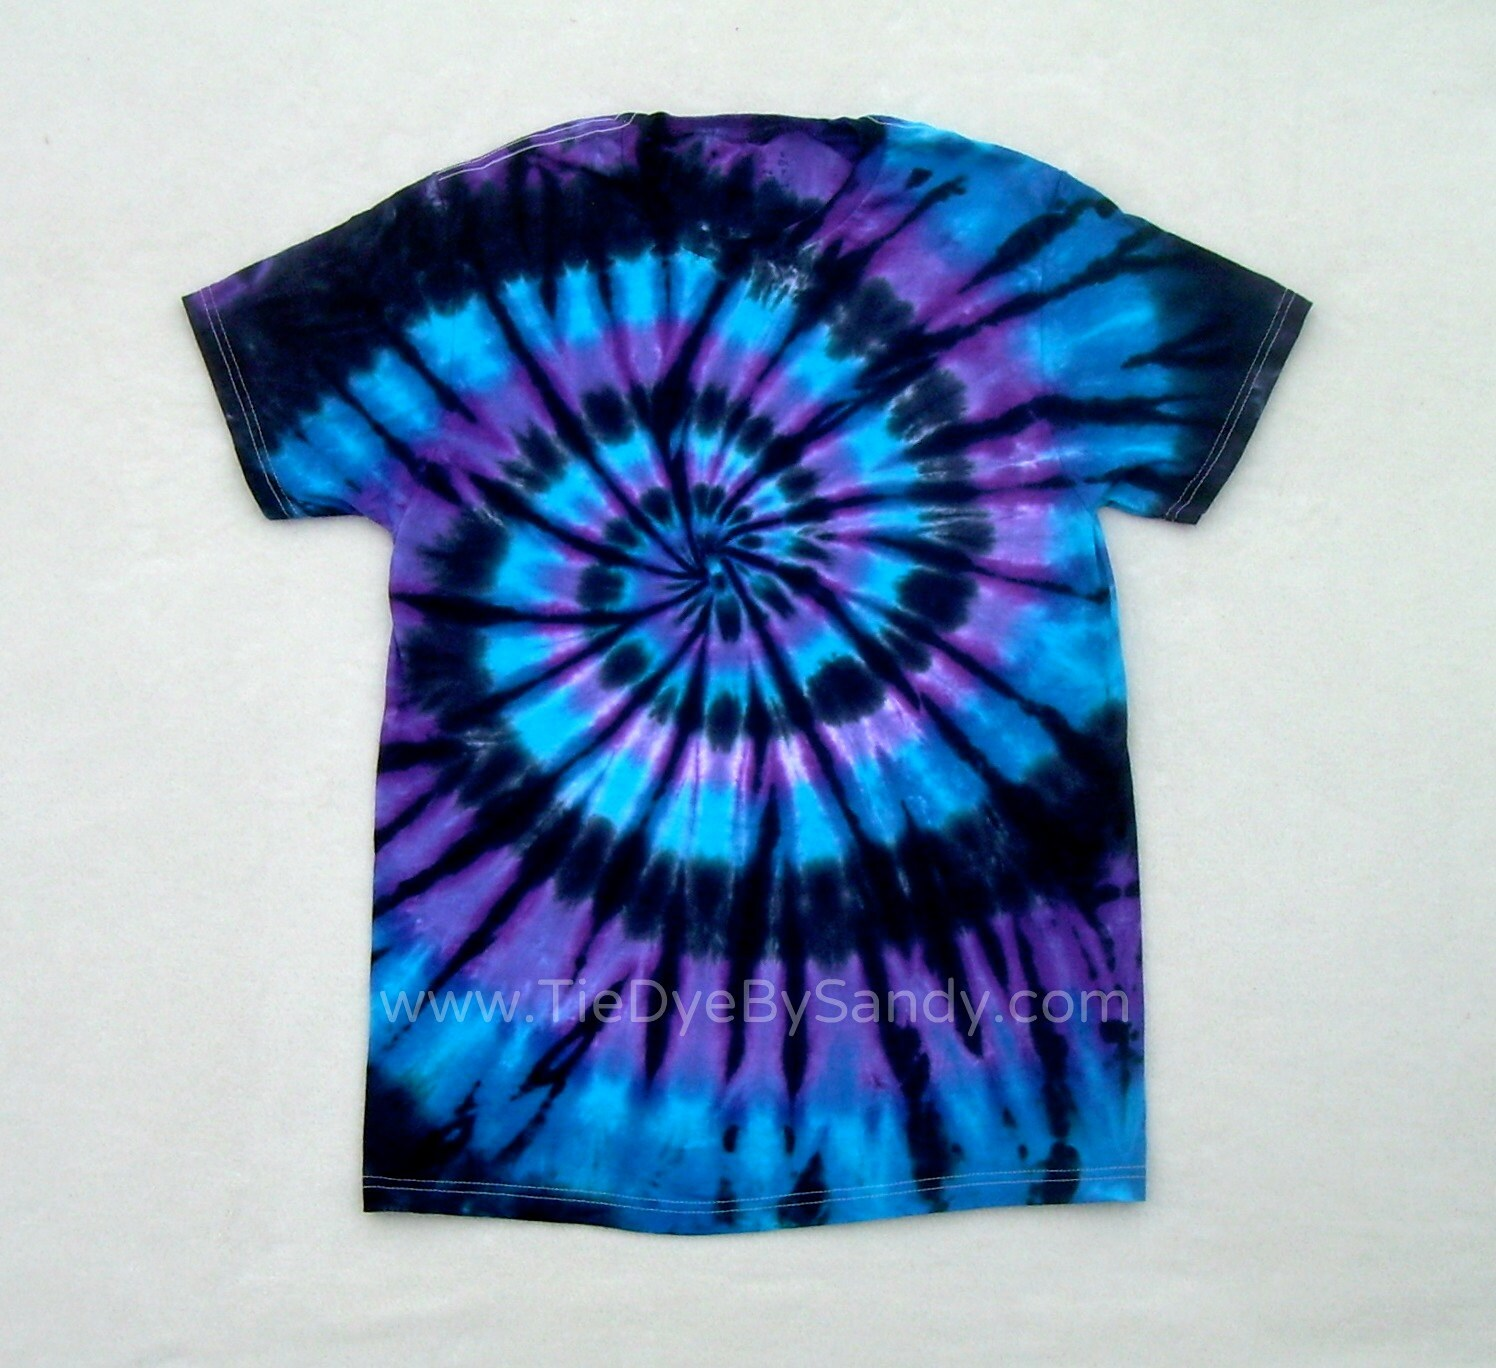 tie dye shirt moon shadow spiral blue purple black. Black Bedroom Furniture Sets. Home Design Ideas